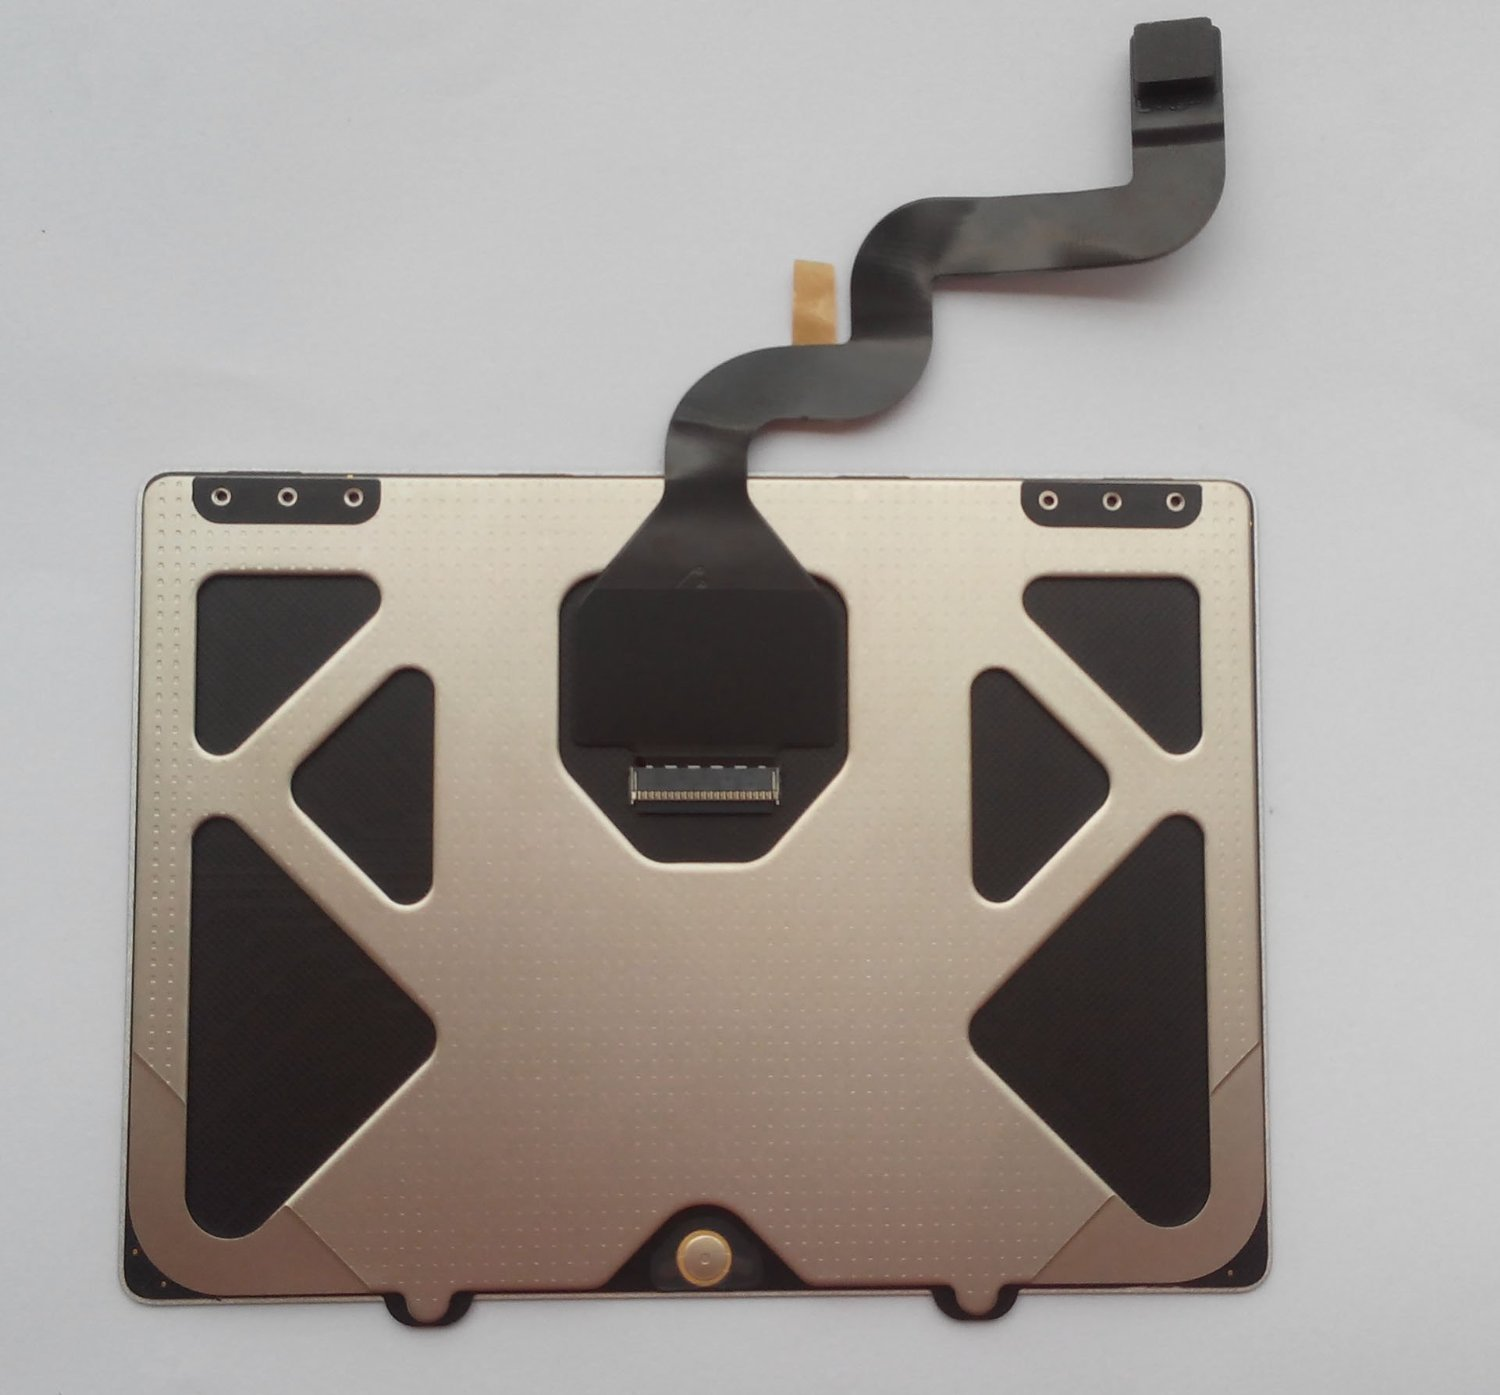 Totola Touchpad with Flex Cable For Macbook pro 15'' Retina A1398 Trackpad Only Fit Mid 2012 (MC975, MC976)